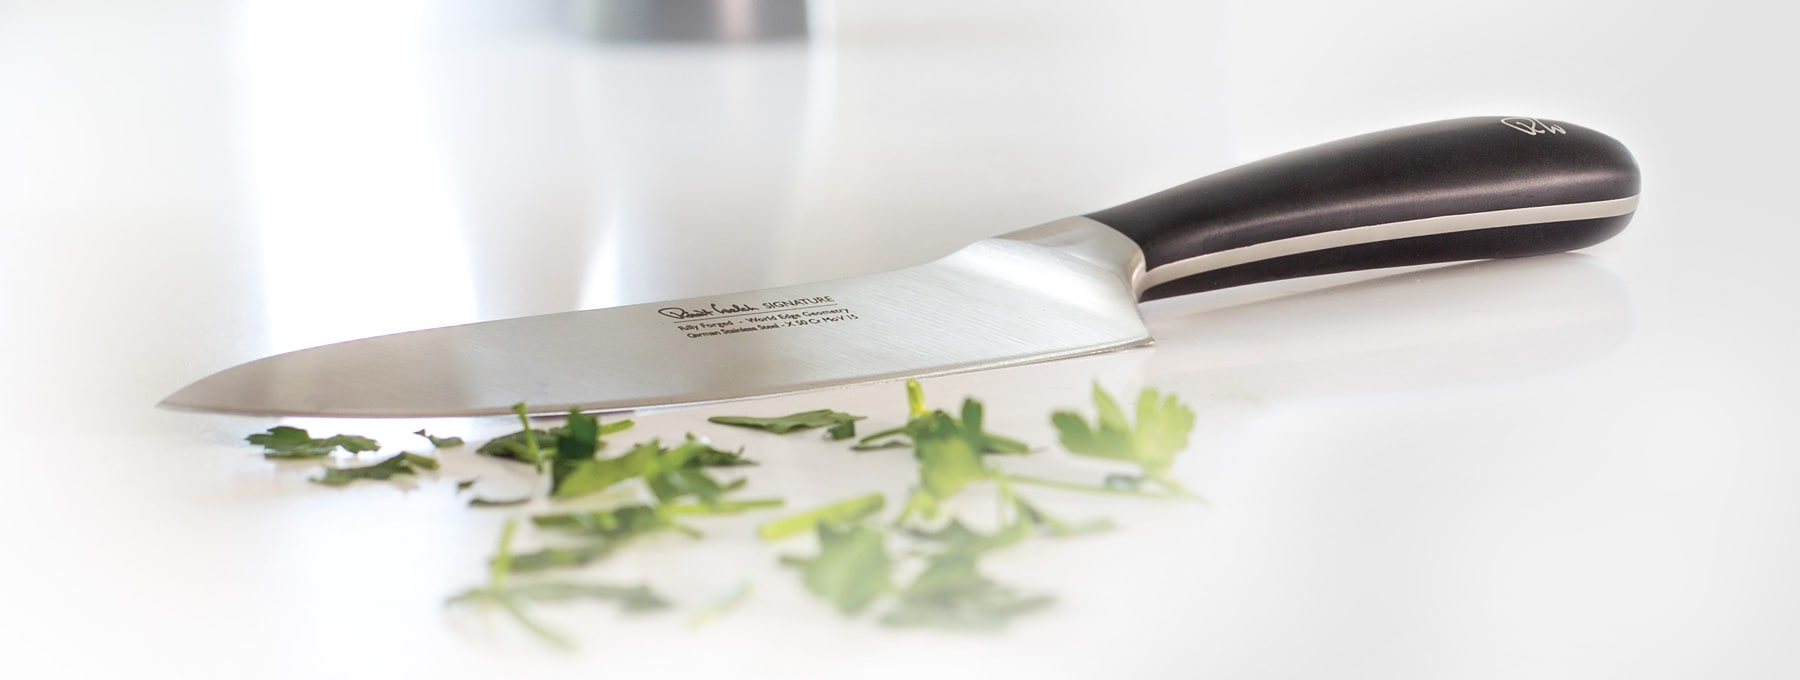 Signature Kitchen Knives are #ONEINAMILLION